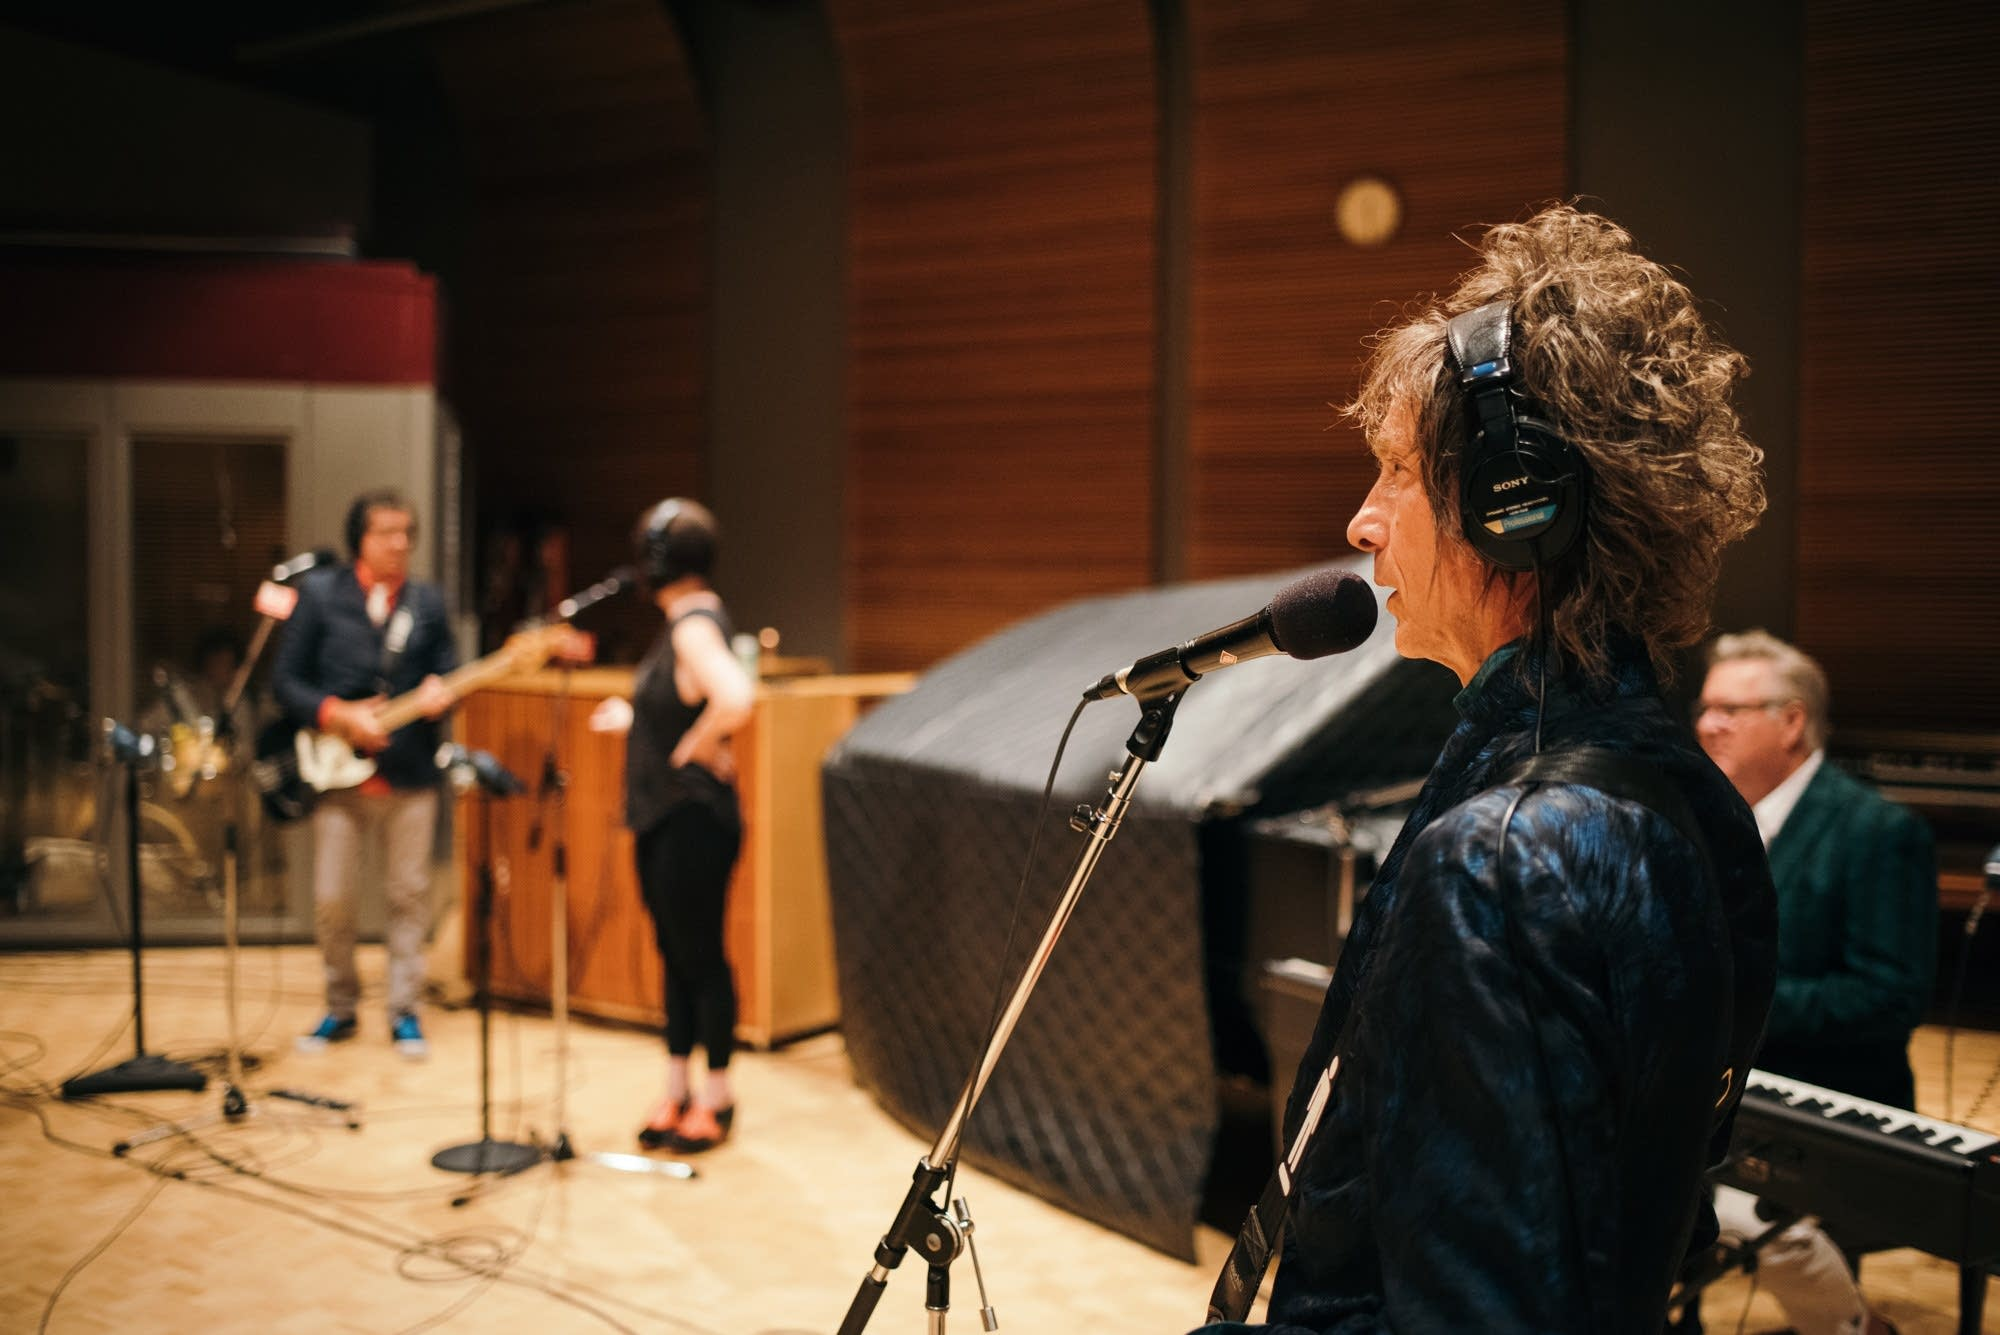 The Suburbs perform in The Current studio